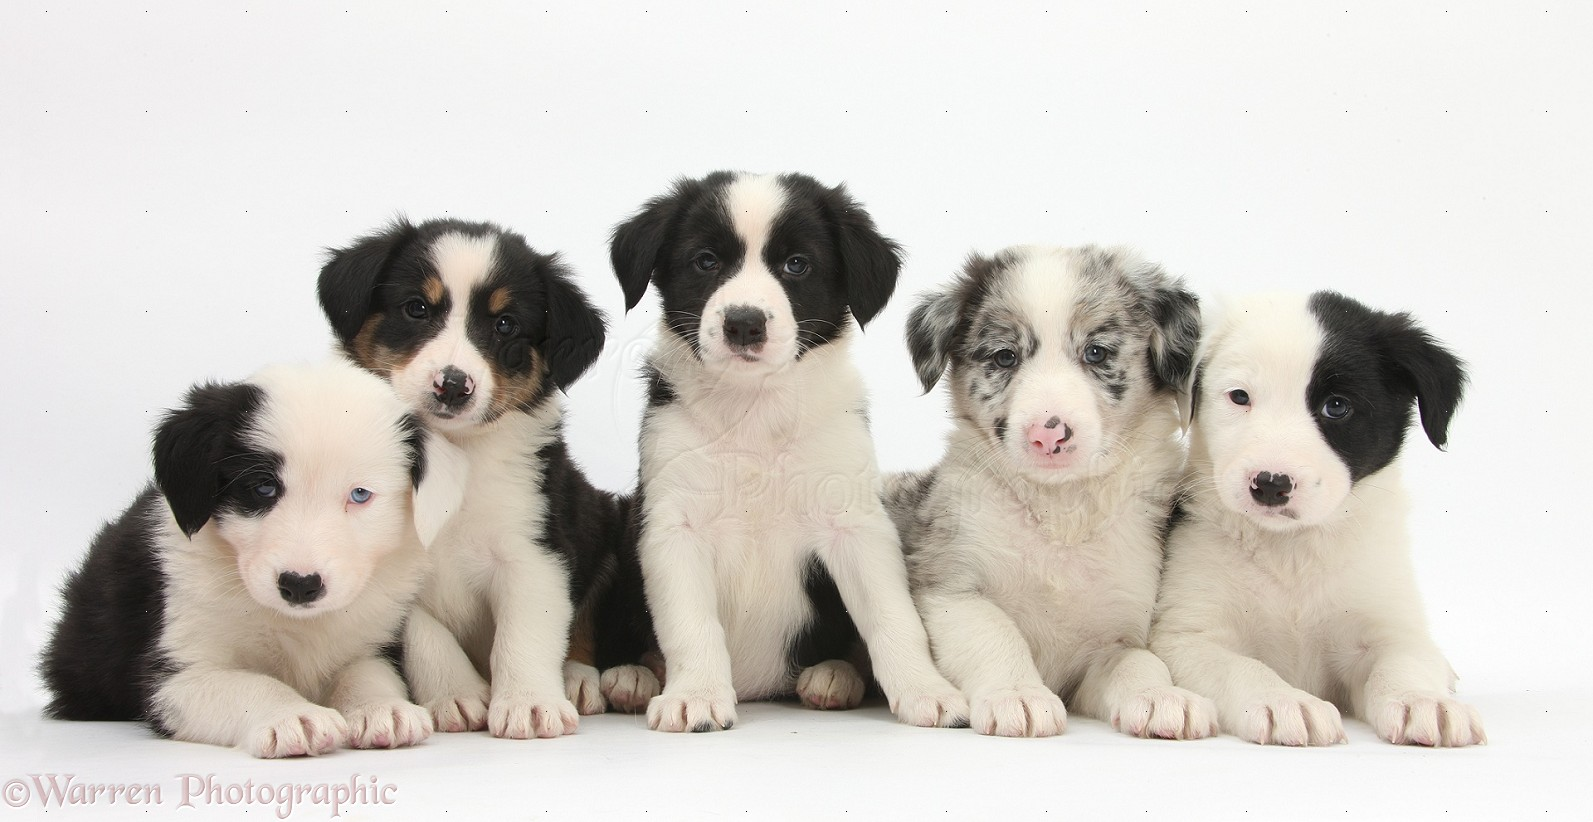 Dogs: Five Border Collie pups, 6 weeks old photo WP32498